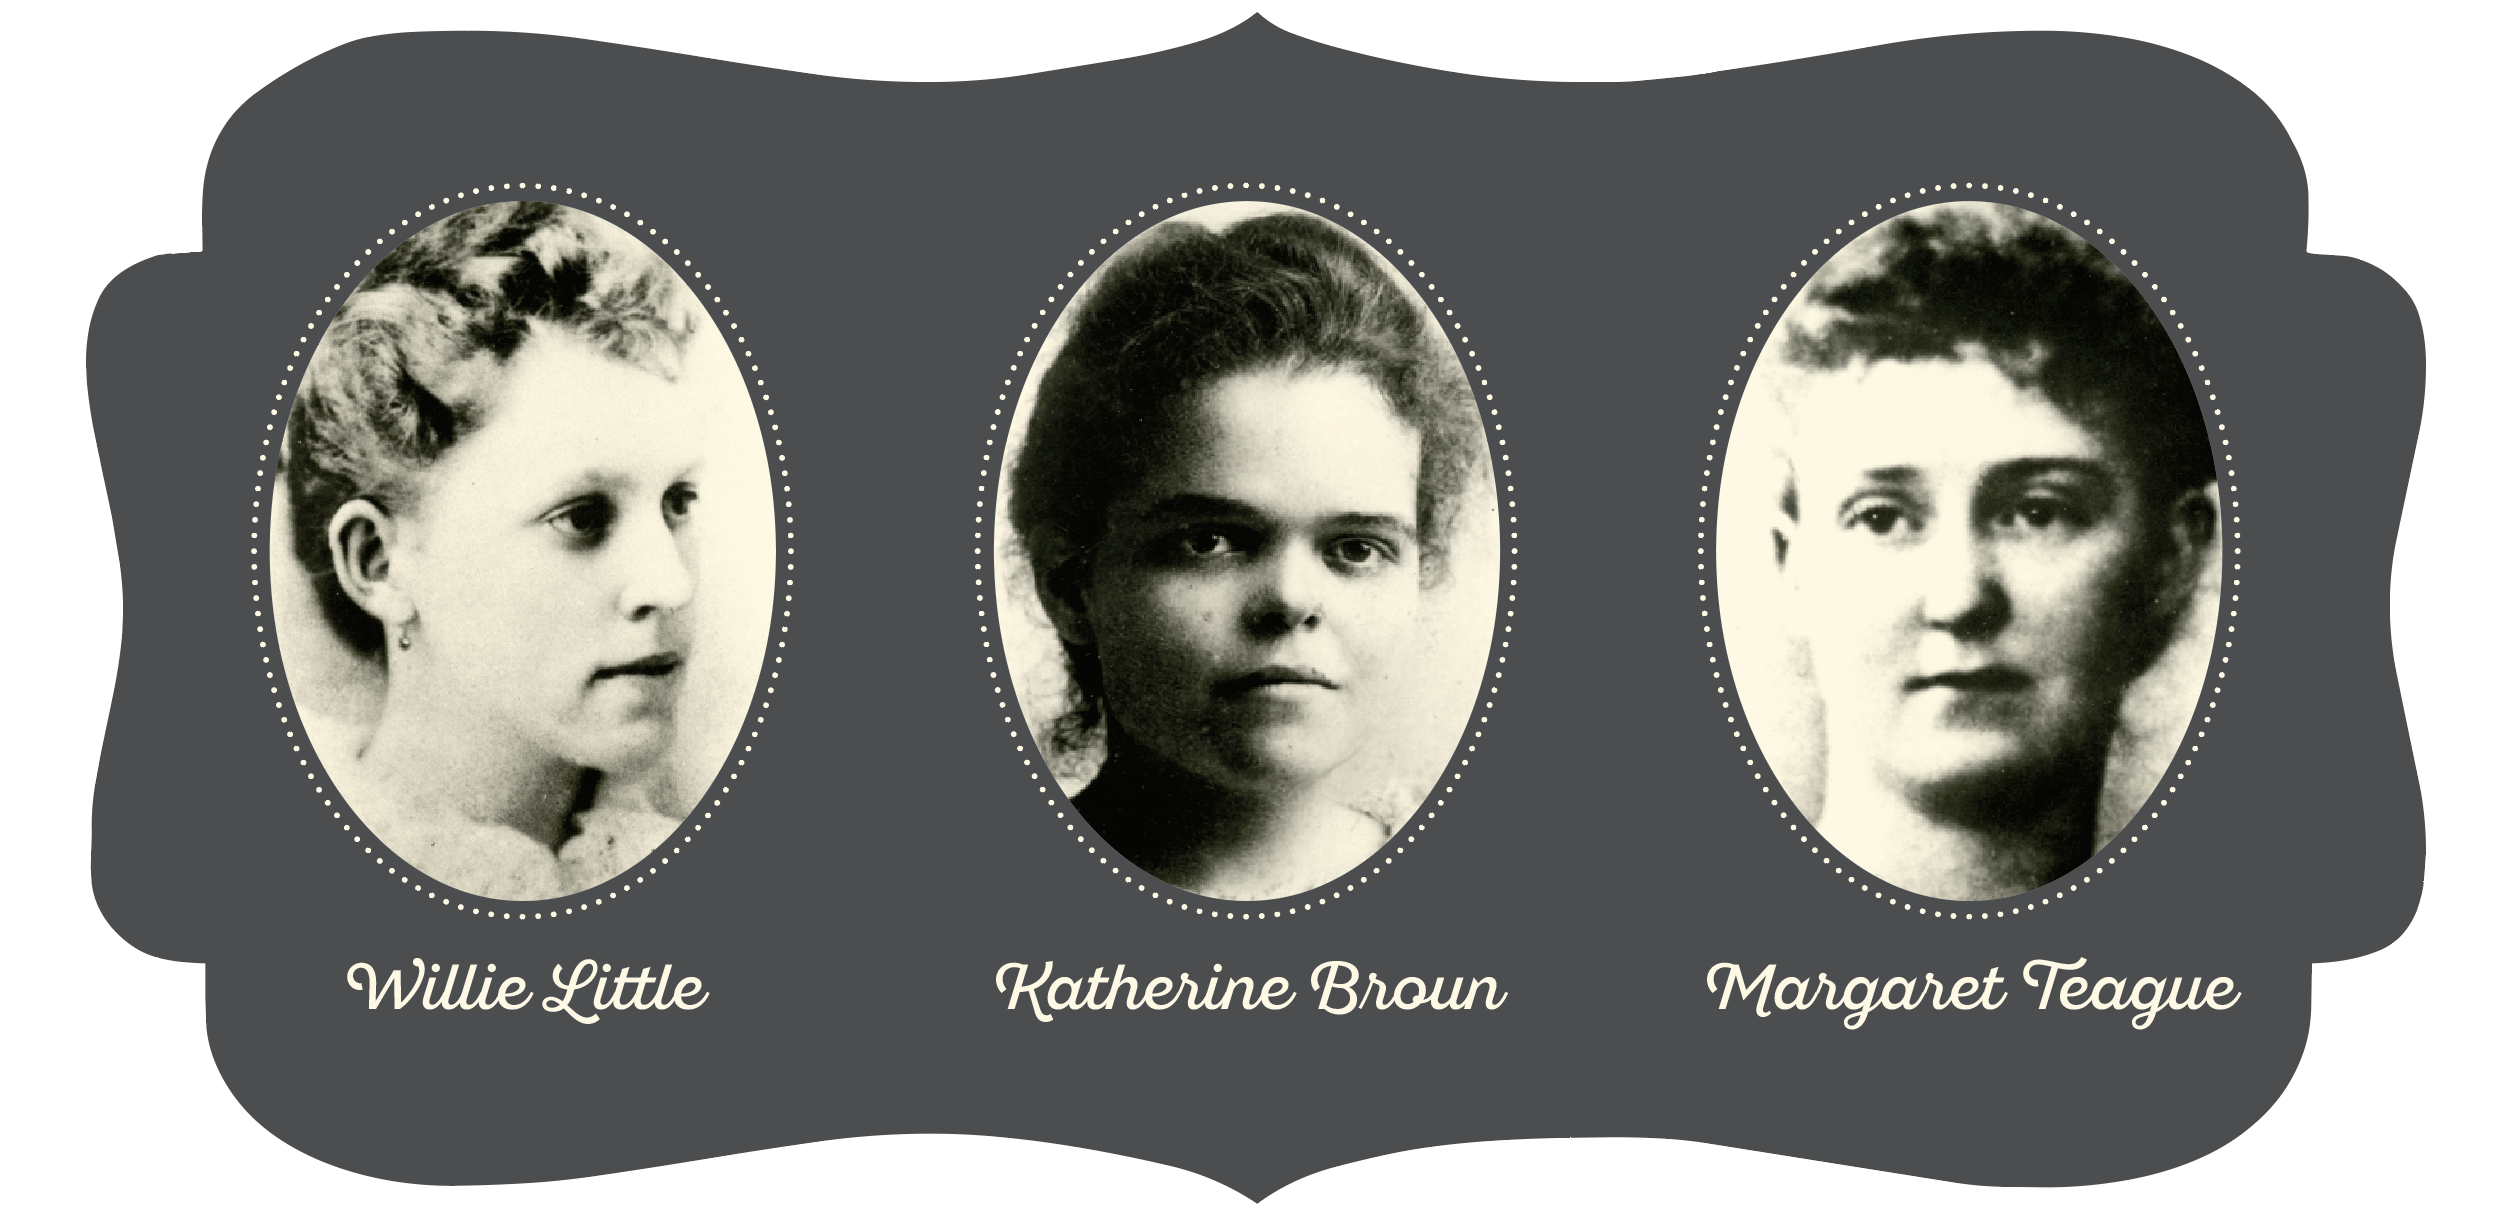 Portraits of the First Three from left to right, Willie Little, Katherine Broun, Margaret Teague